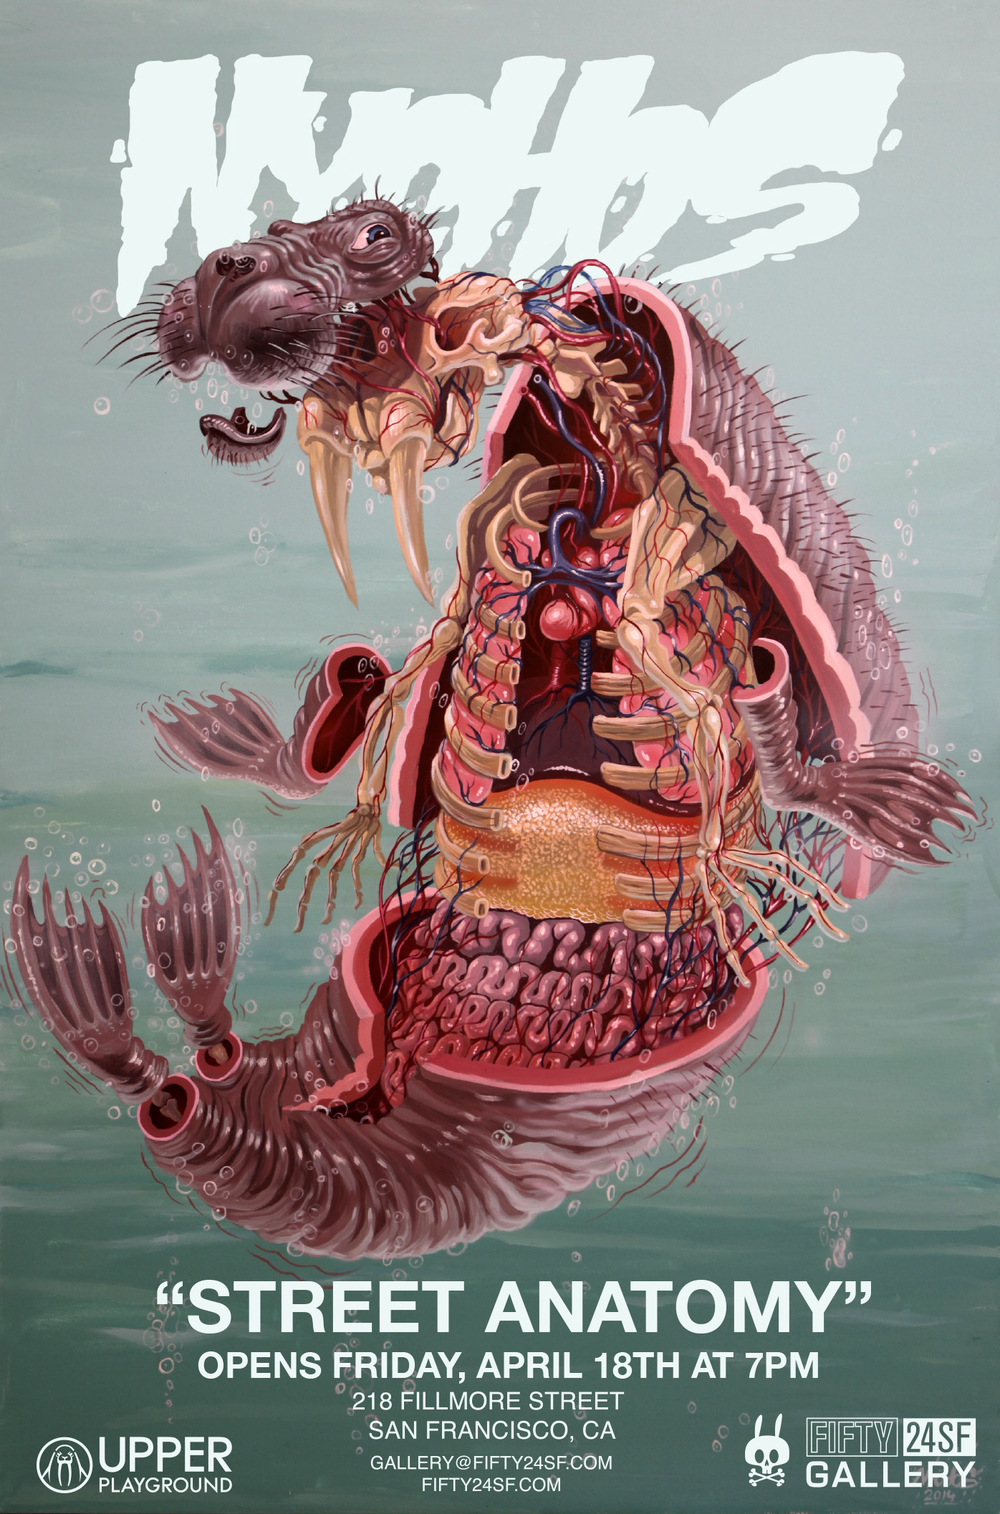 NYCHOS-STREET-ANATOMY-FIFTY24SF-FLYER.jpg